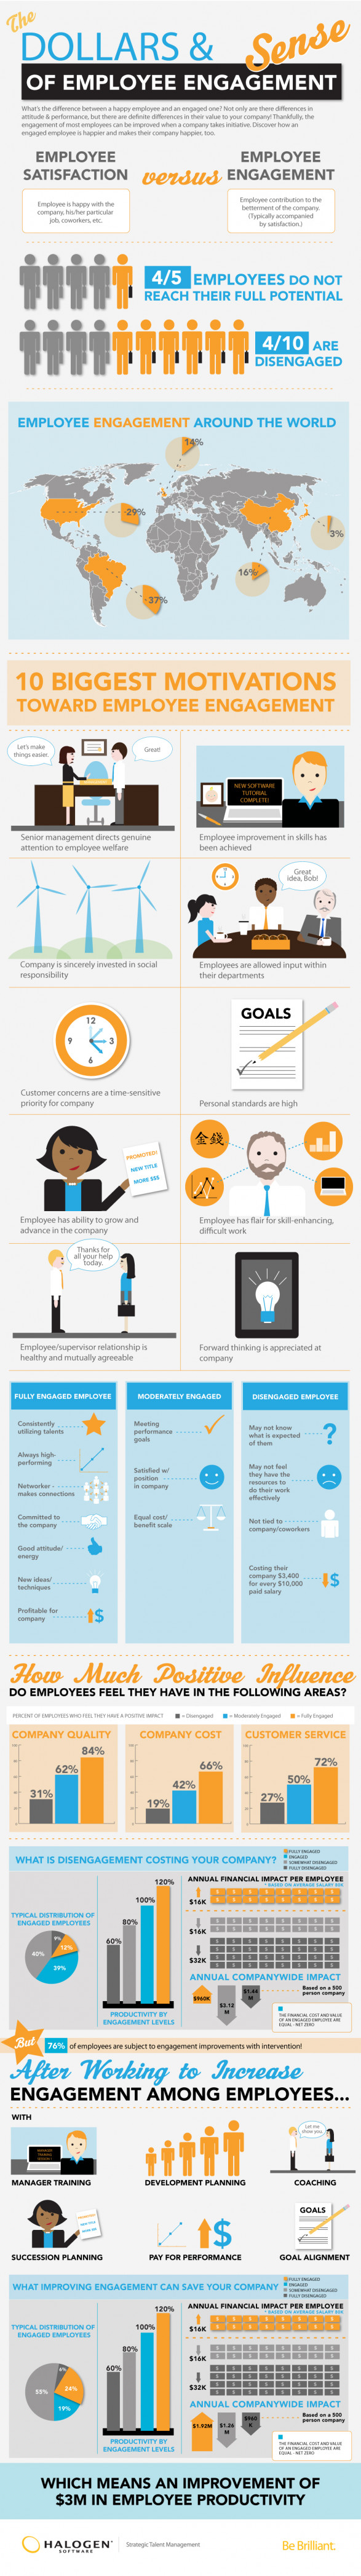 The Dollars and Sense of Employee Engagement